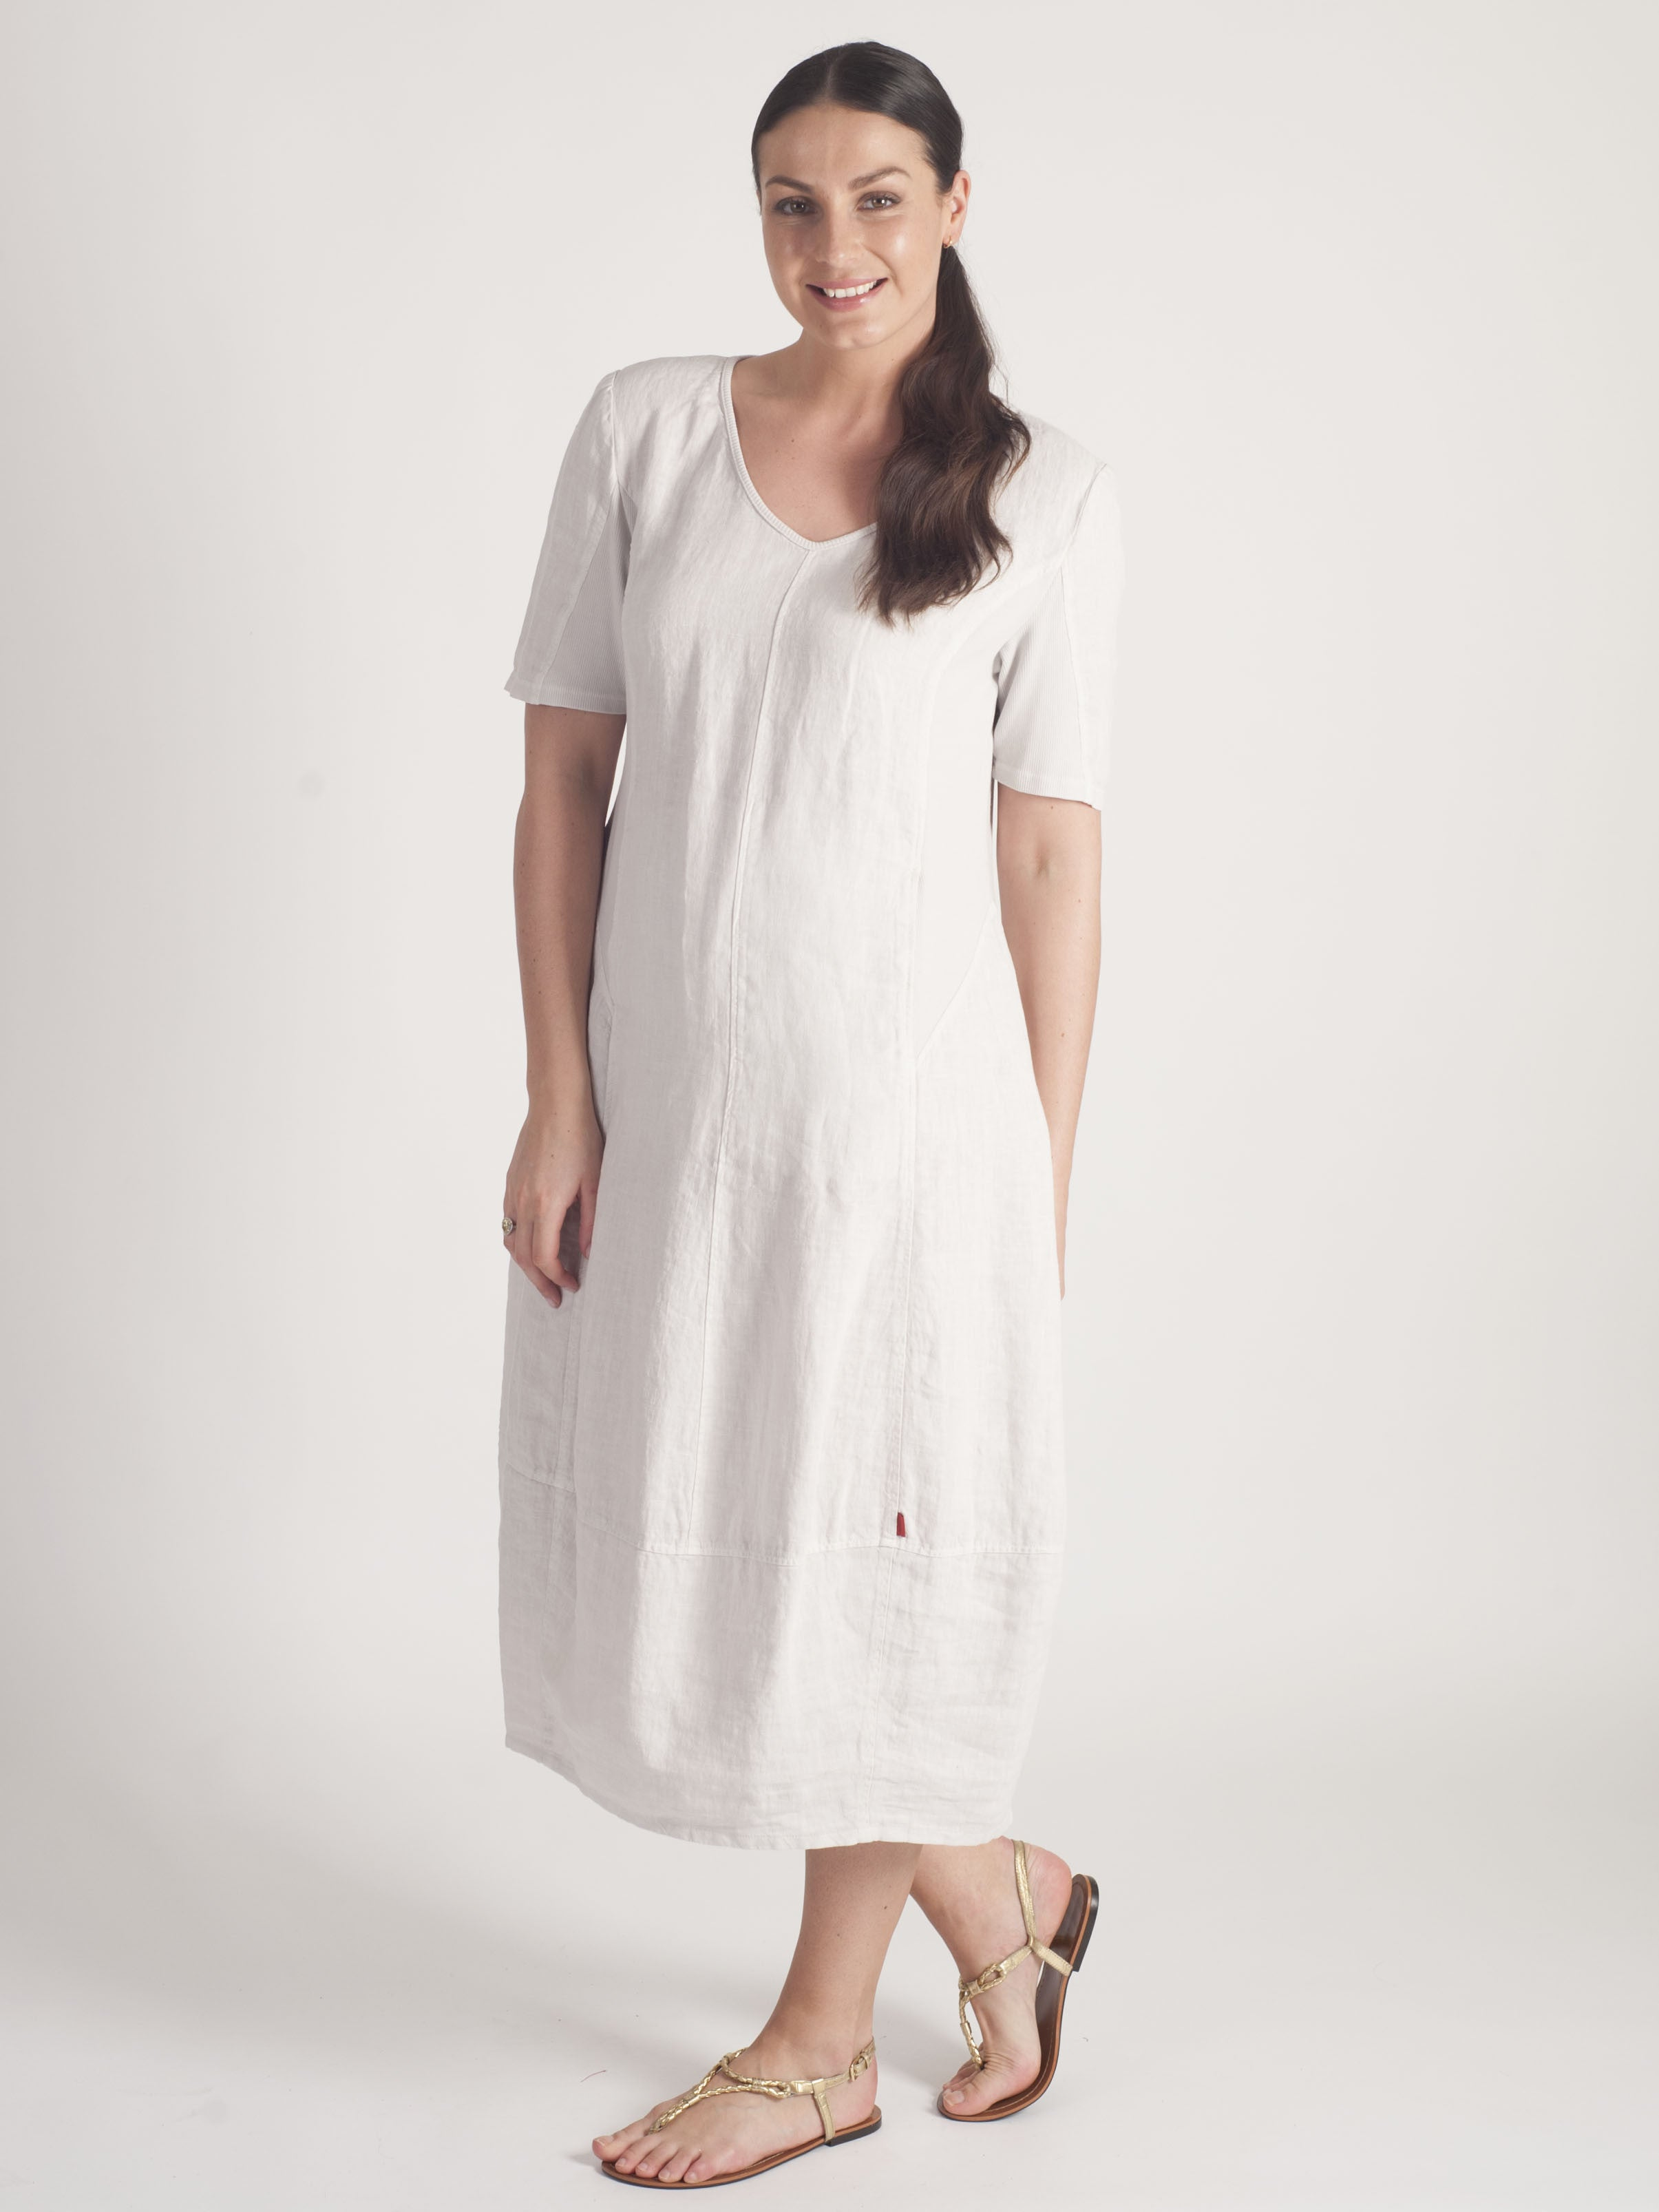 Vetono Stone Linen Dress